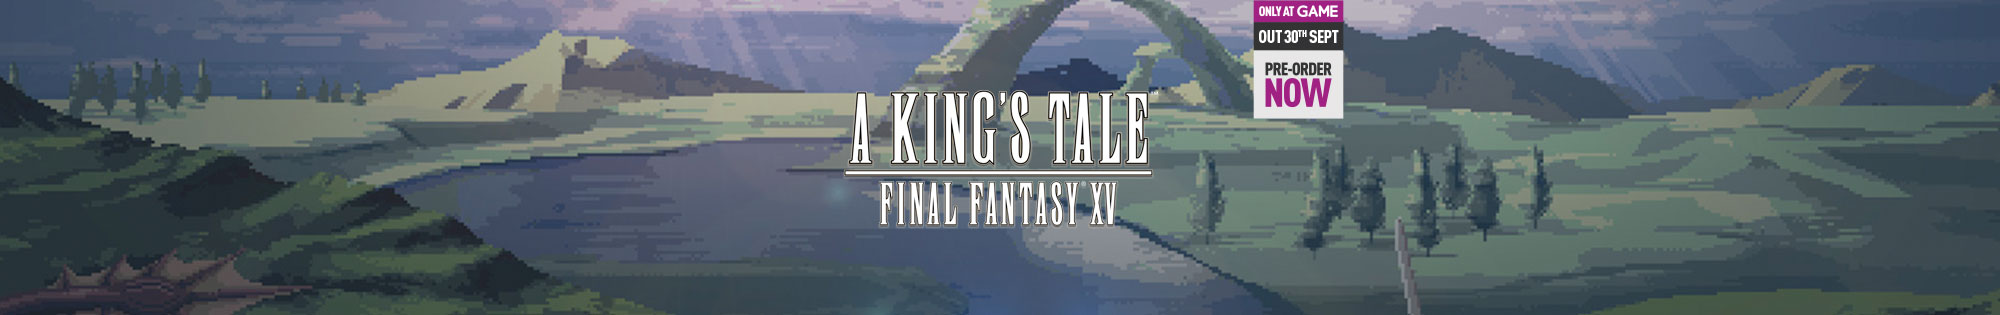 "Final Fantasy XV with Only at GAME ""A King's Tale"" Pre-order bonus – Pre-order Now at GAME.co.uk!"